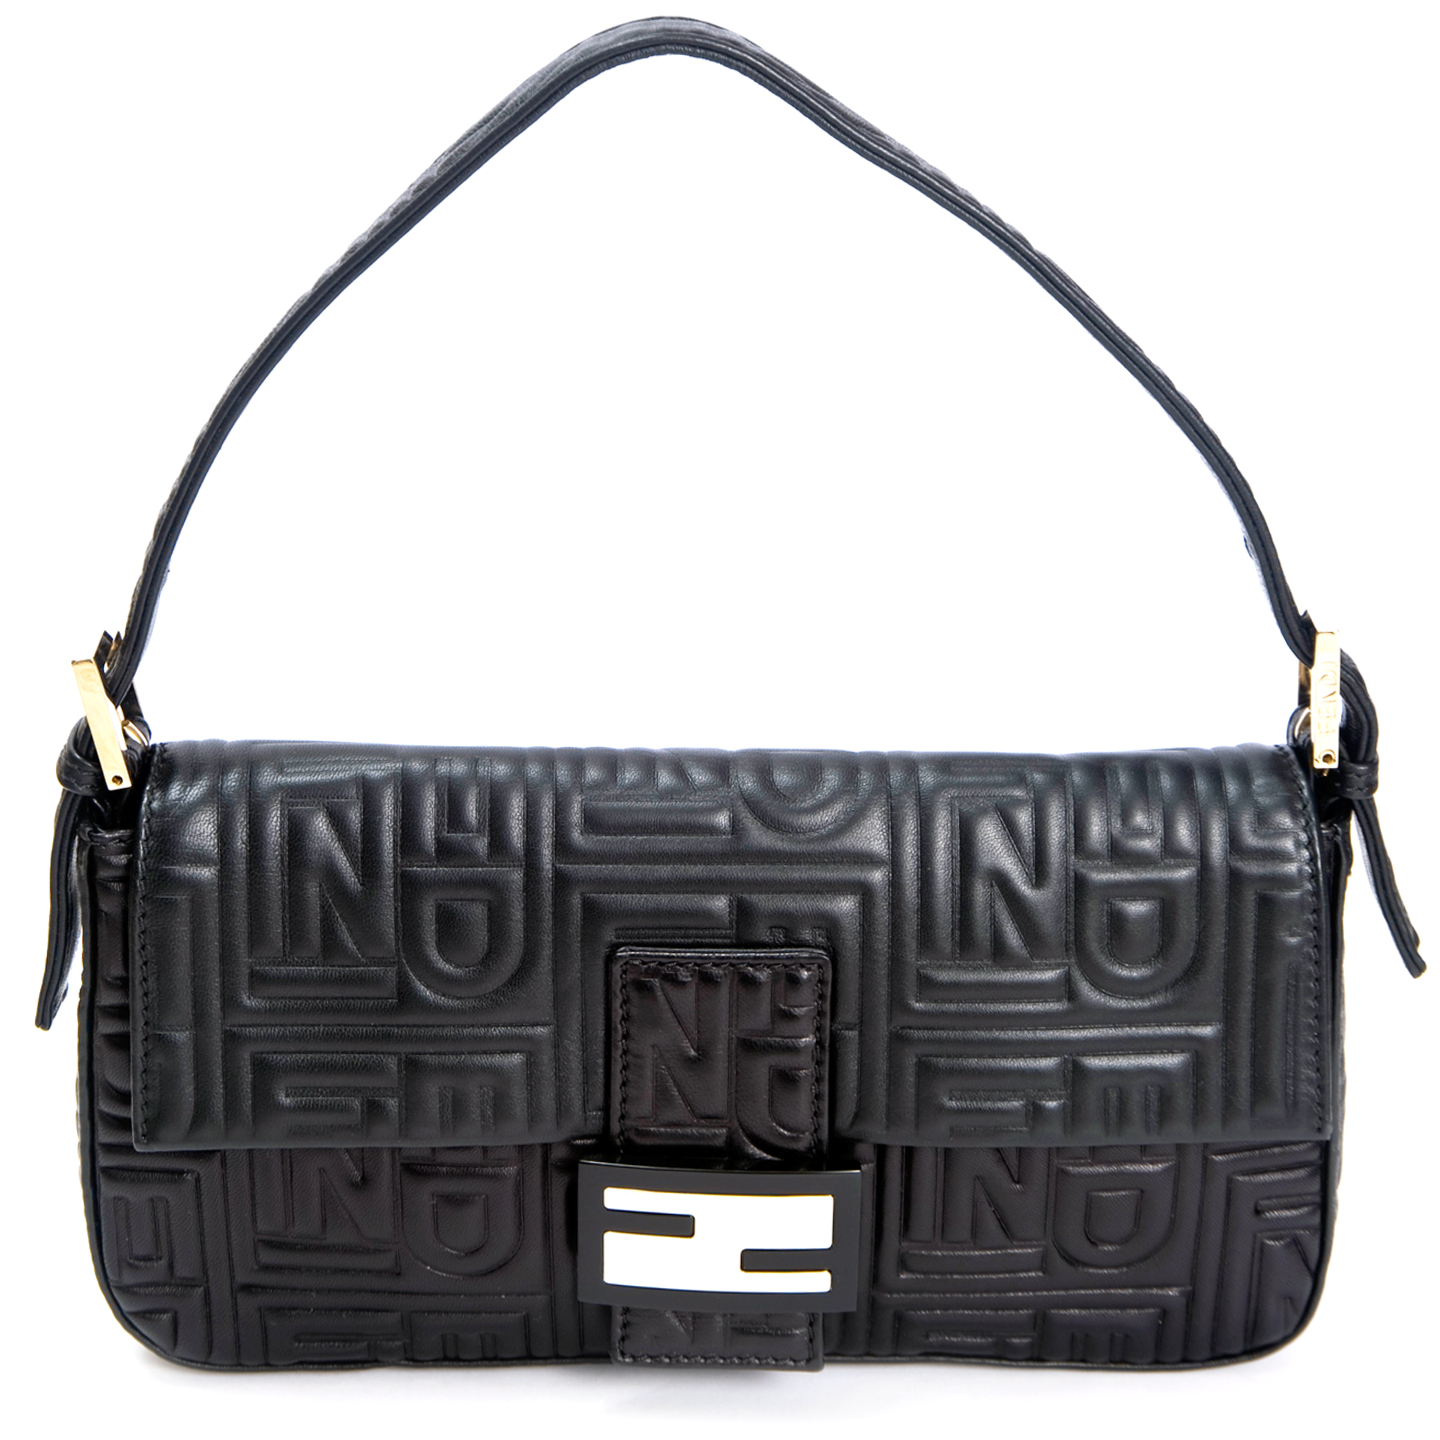 6028223c187b Fendi Black Embossed Nappa Leather Baguette Bag - LabelCentric